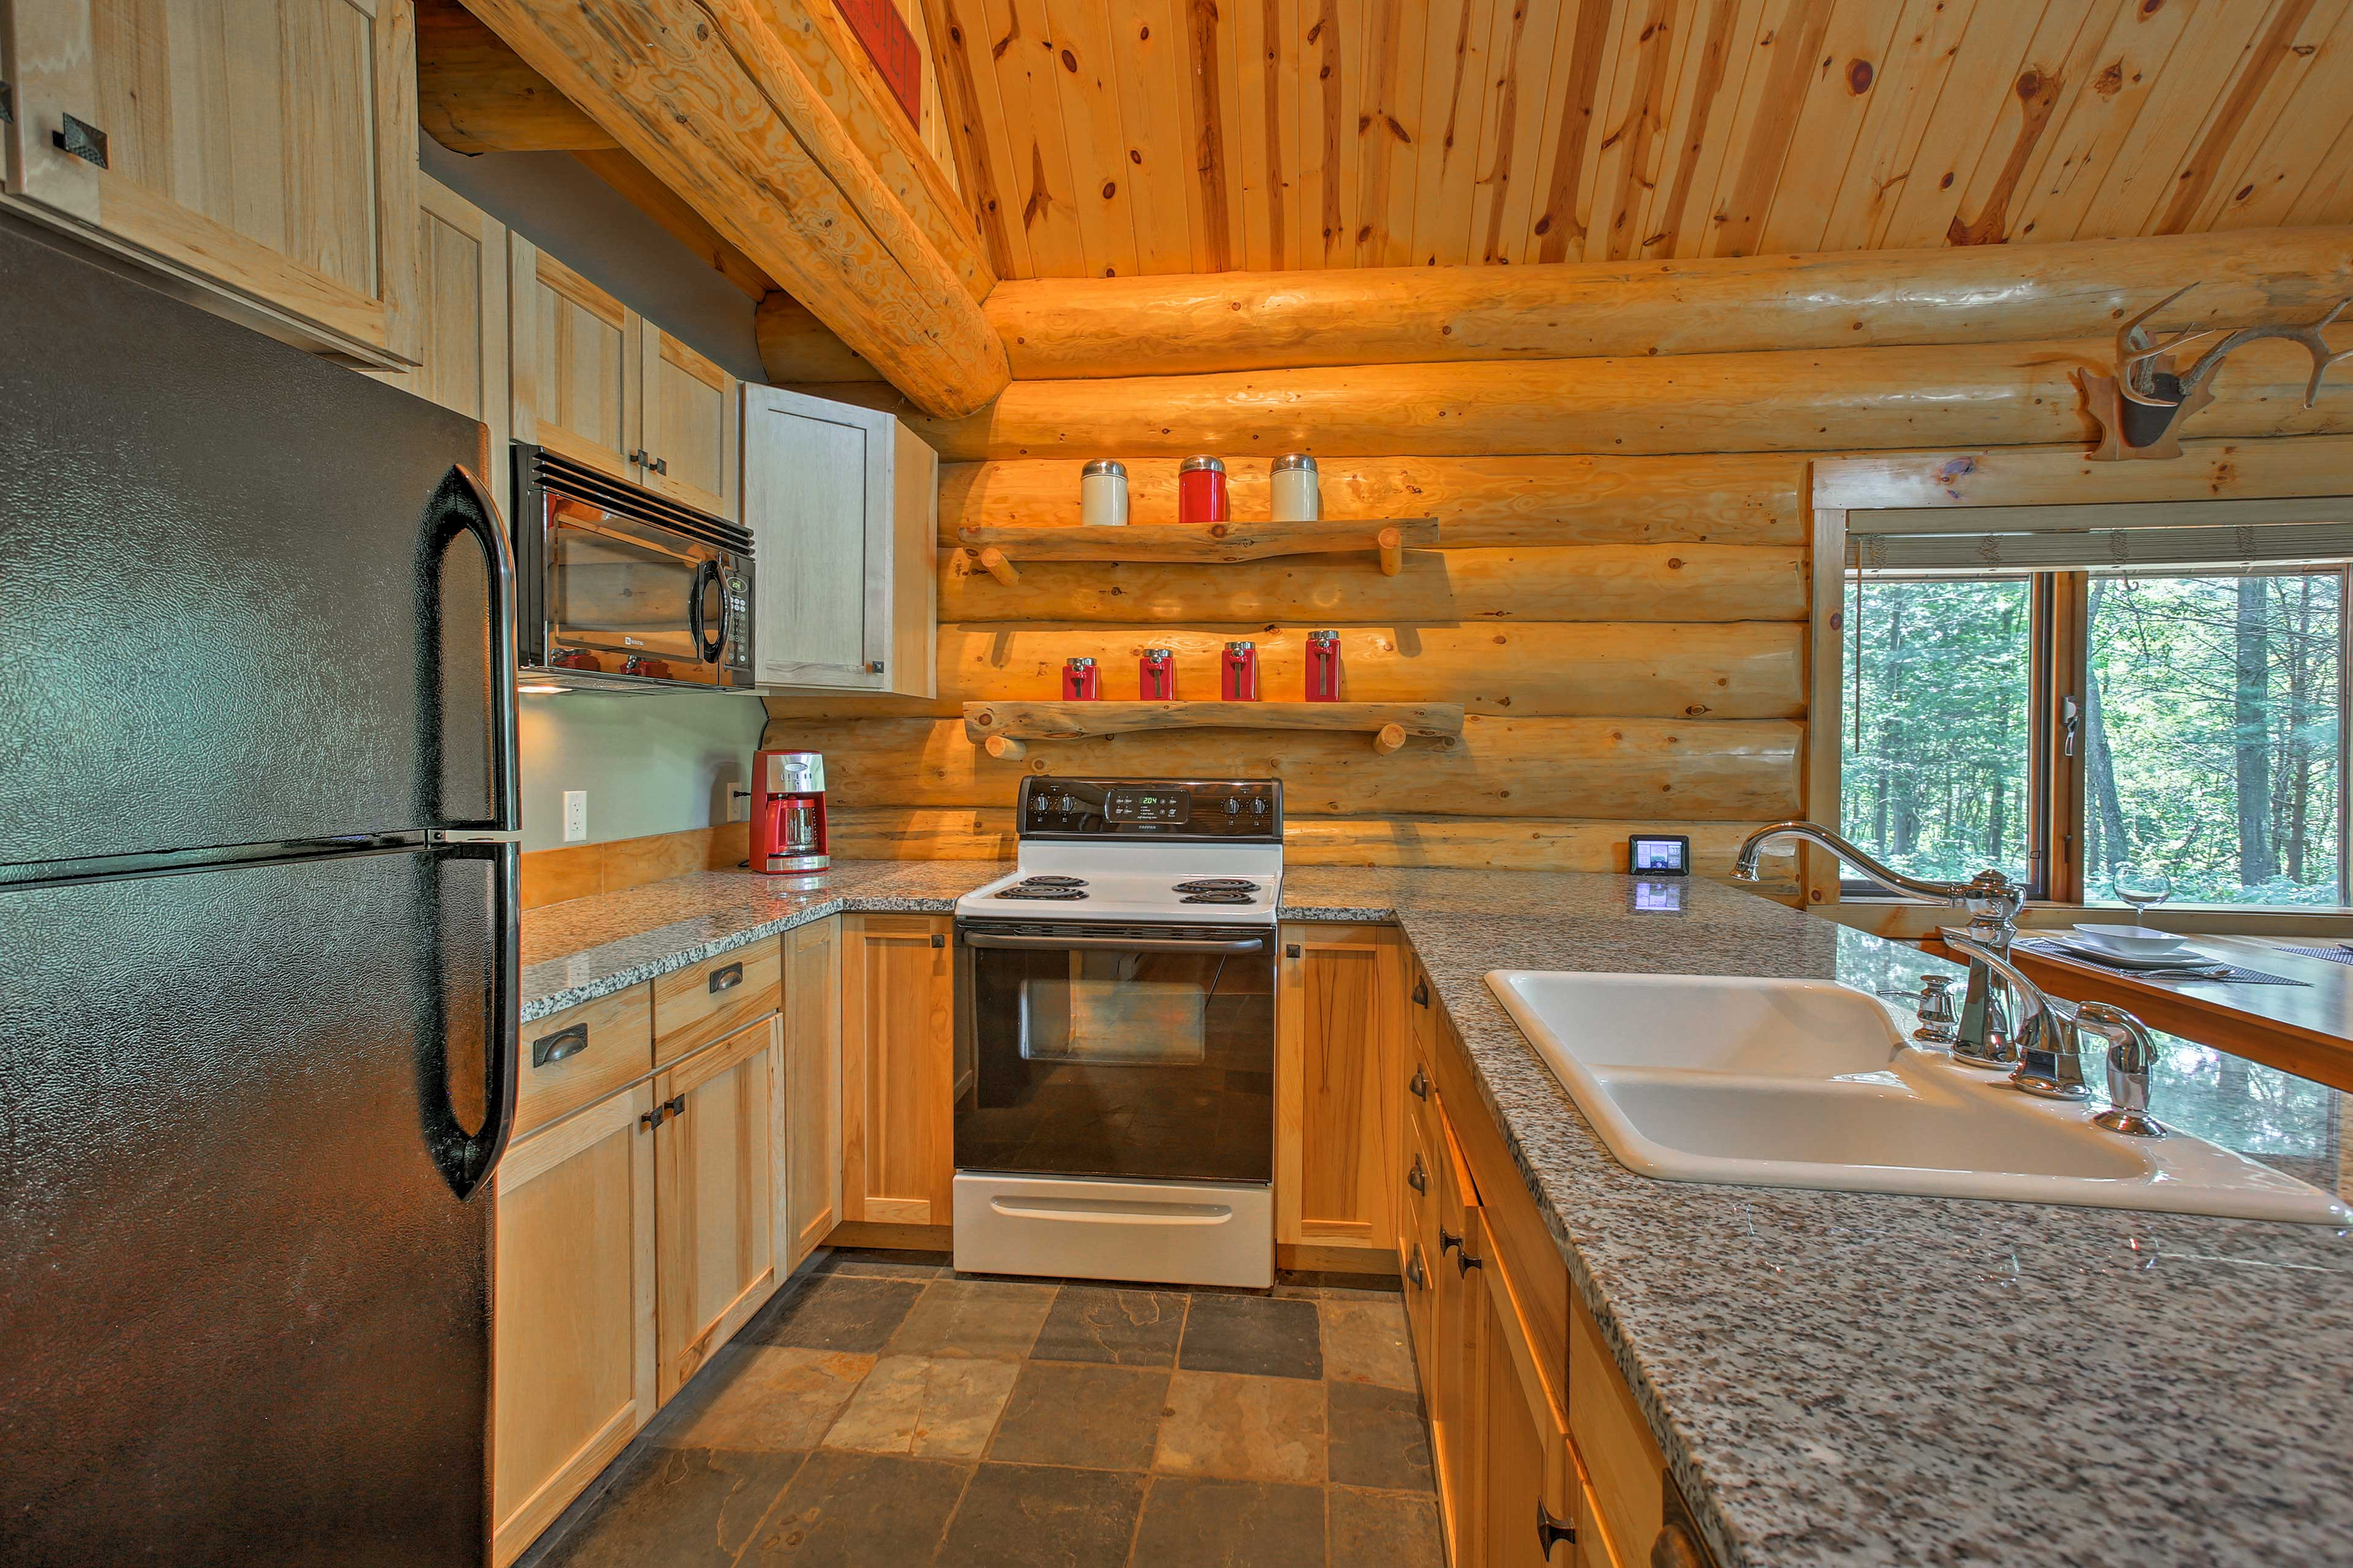 Prepare a delicious meal to enjoy on the deck in this fully equipped kitchen!